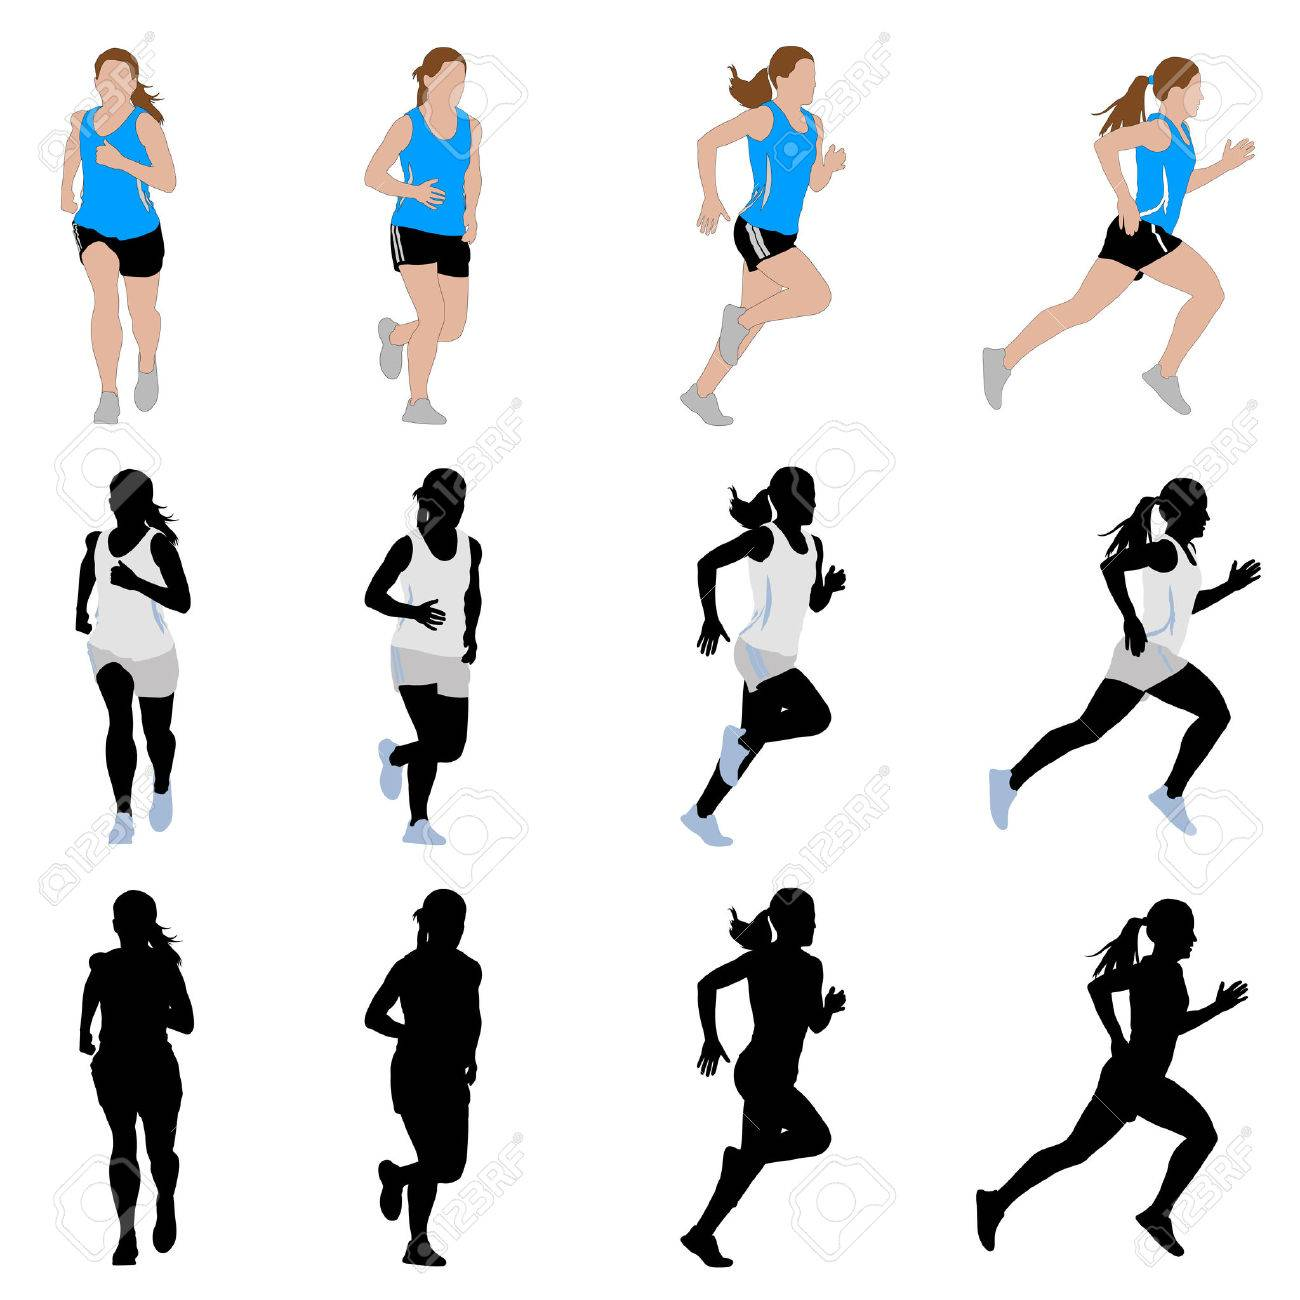 female runner vector royalty free cliparts vectors and stock illustration image 41389361 female runner vector